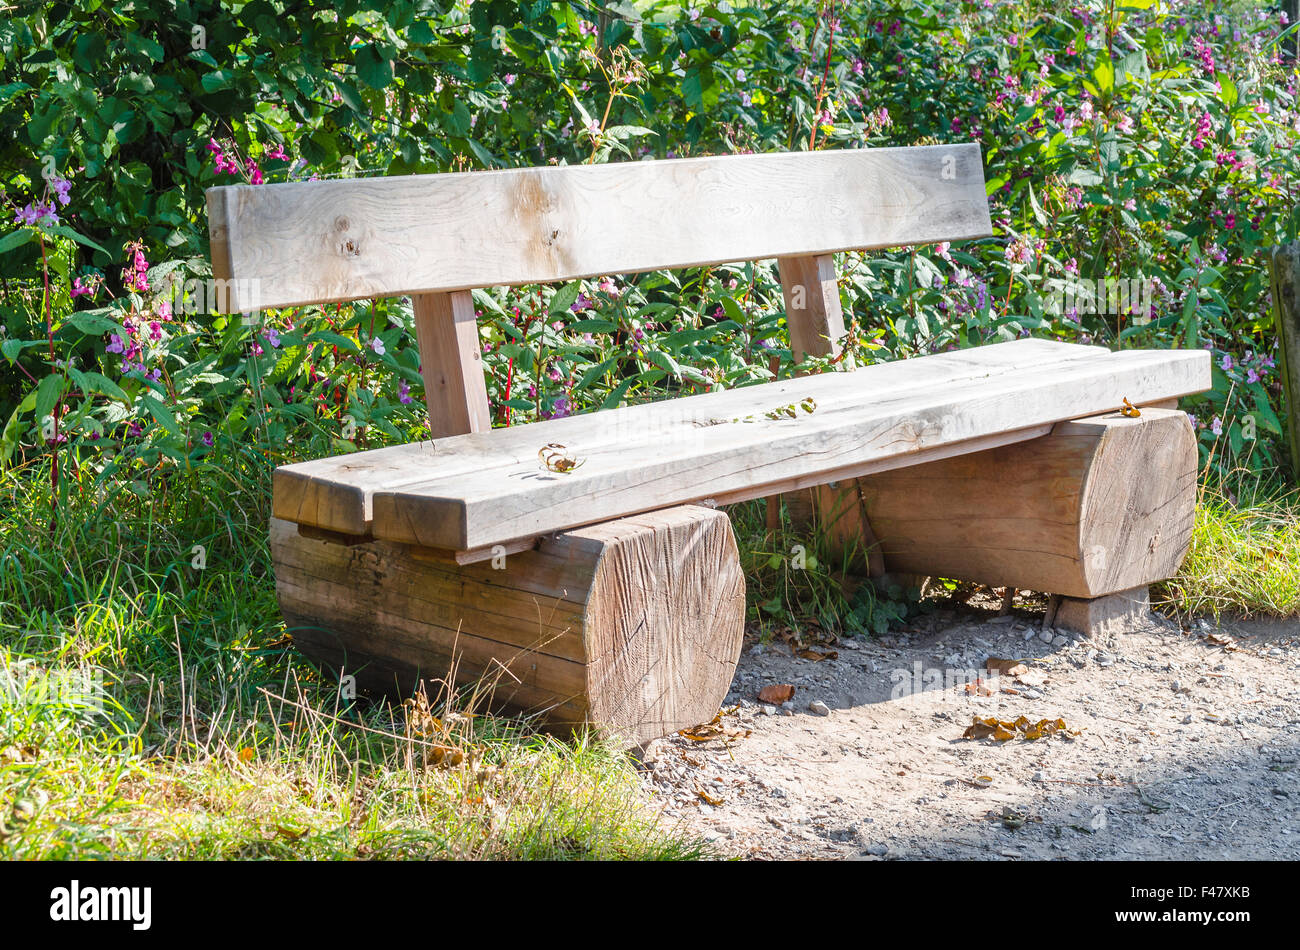 Bench, park bench made of tree trunk Stock Photo